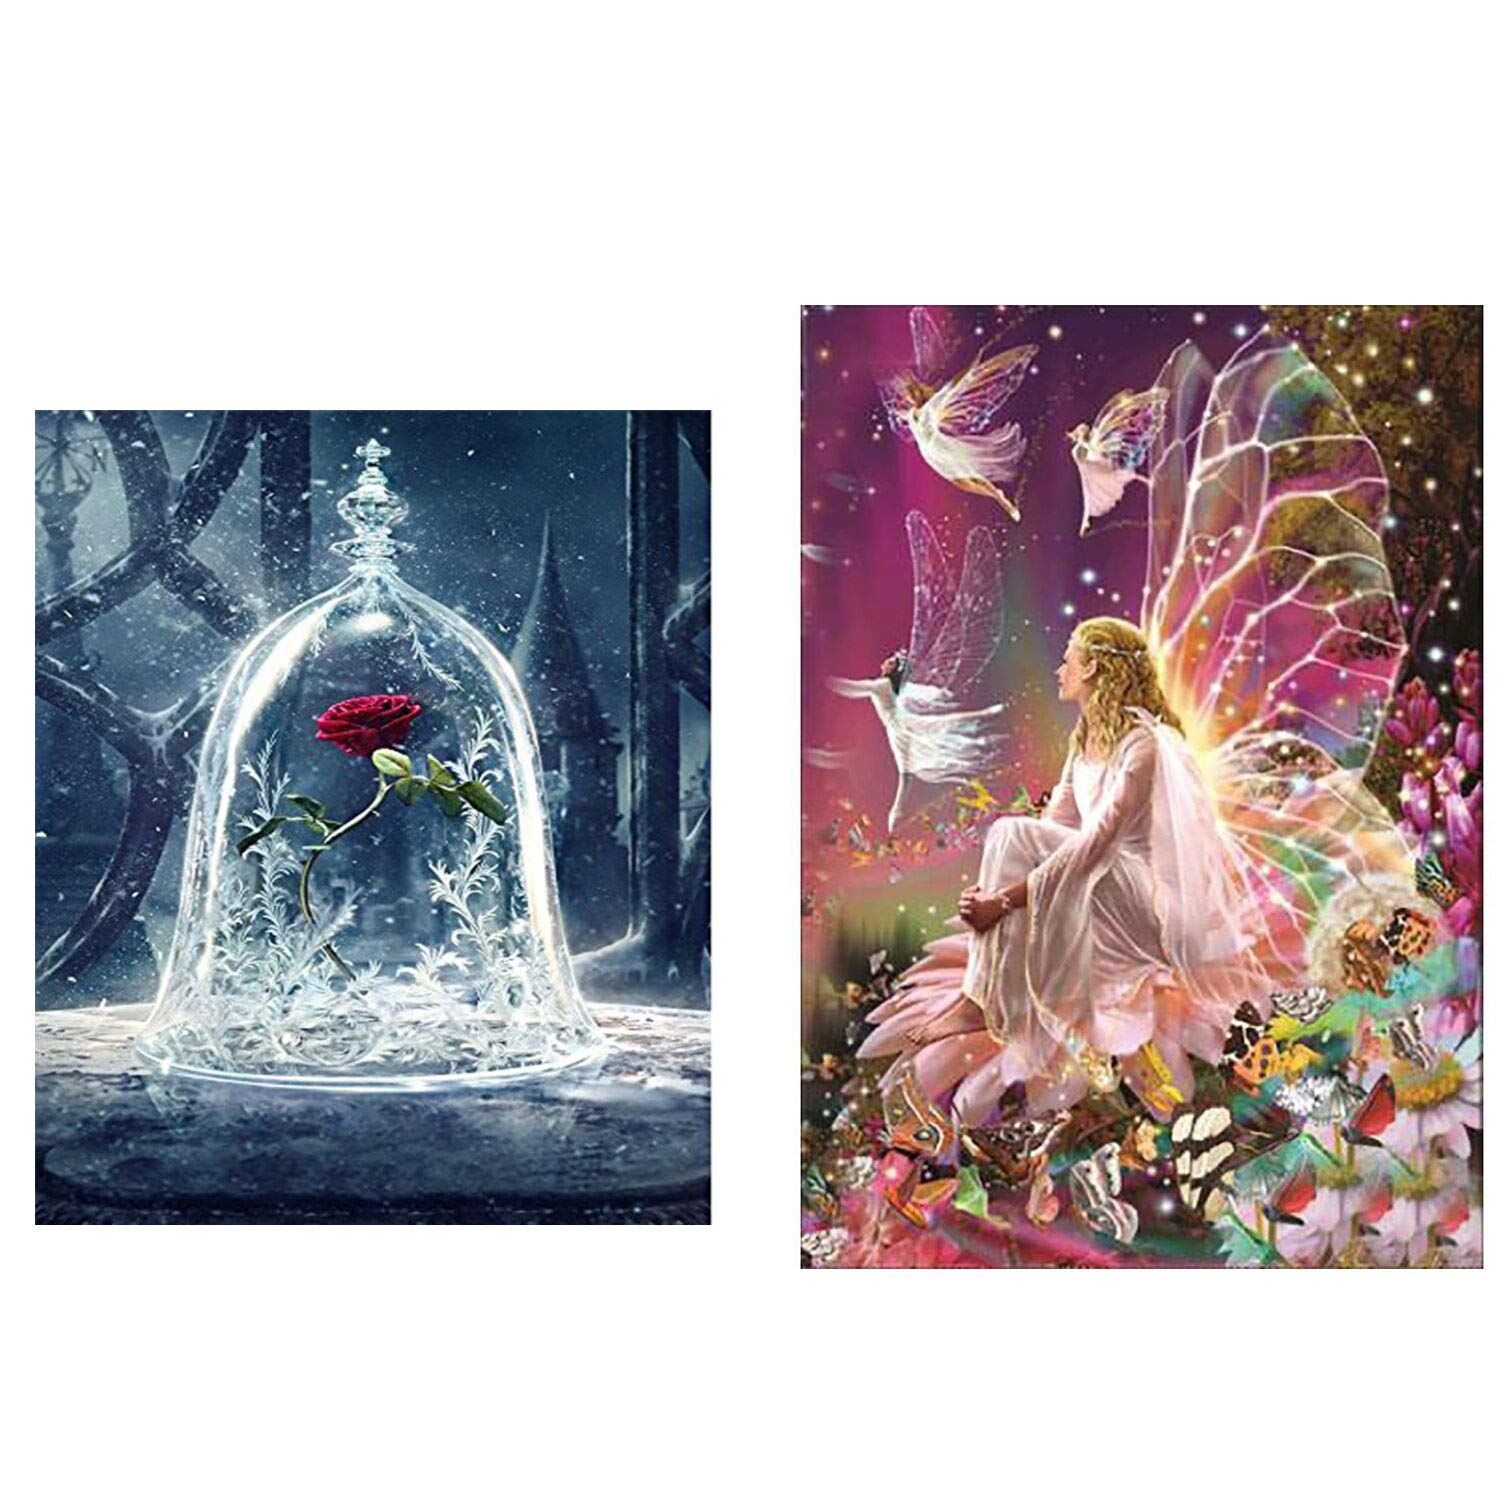 2 Pack DIY 5D Diamond Painting Art Full Drill Kits,Full Diamond Flower Queen Elf and Beauty and the Beast Rose 5D Diamond Art, Diamond Painting Kits DIY Art Craft Home Wall Decoration (30*30cm&30*40cm) KRUCE